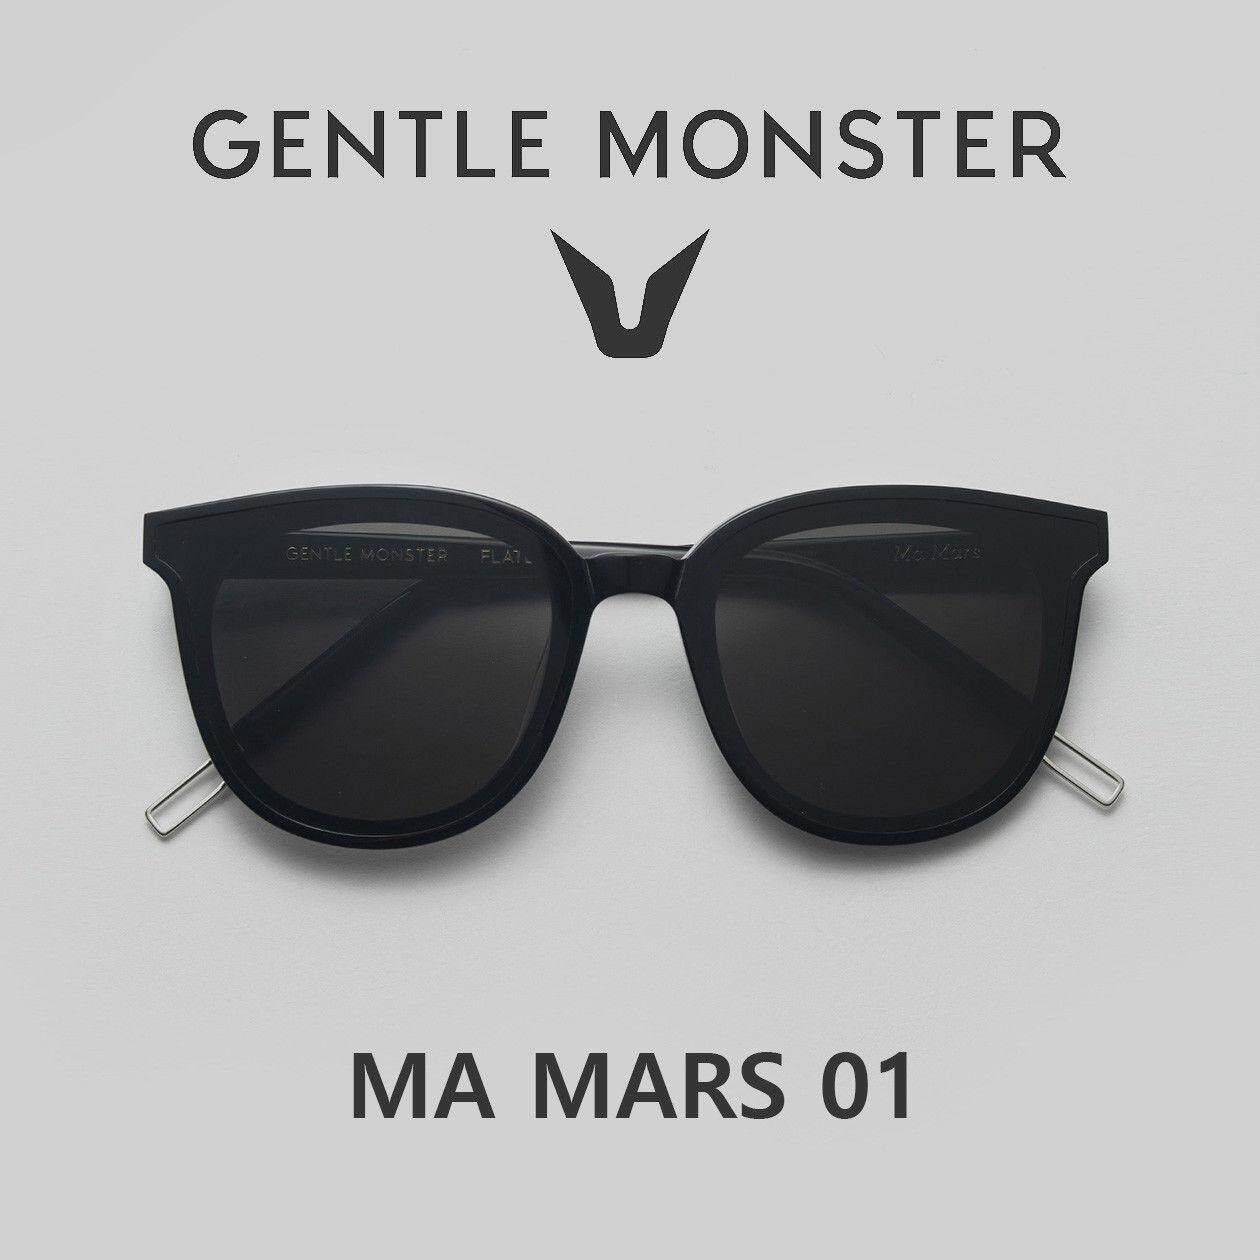 2a90e28fb5c Gentle Monster Ma Mars 01 Black Sunglasses Korea Sunglass eyeglasses lens  glasses Malaysia